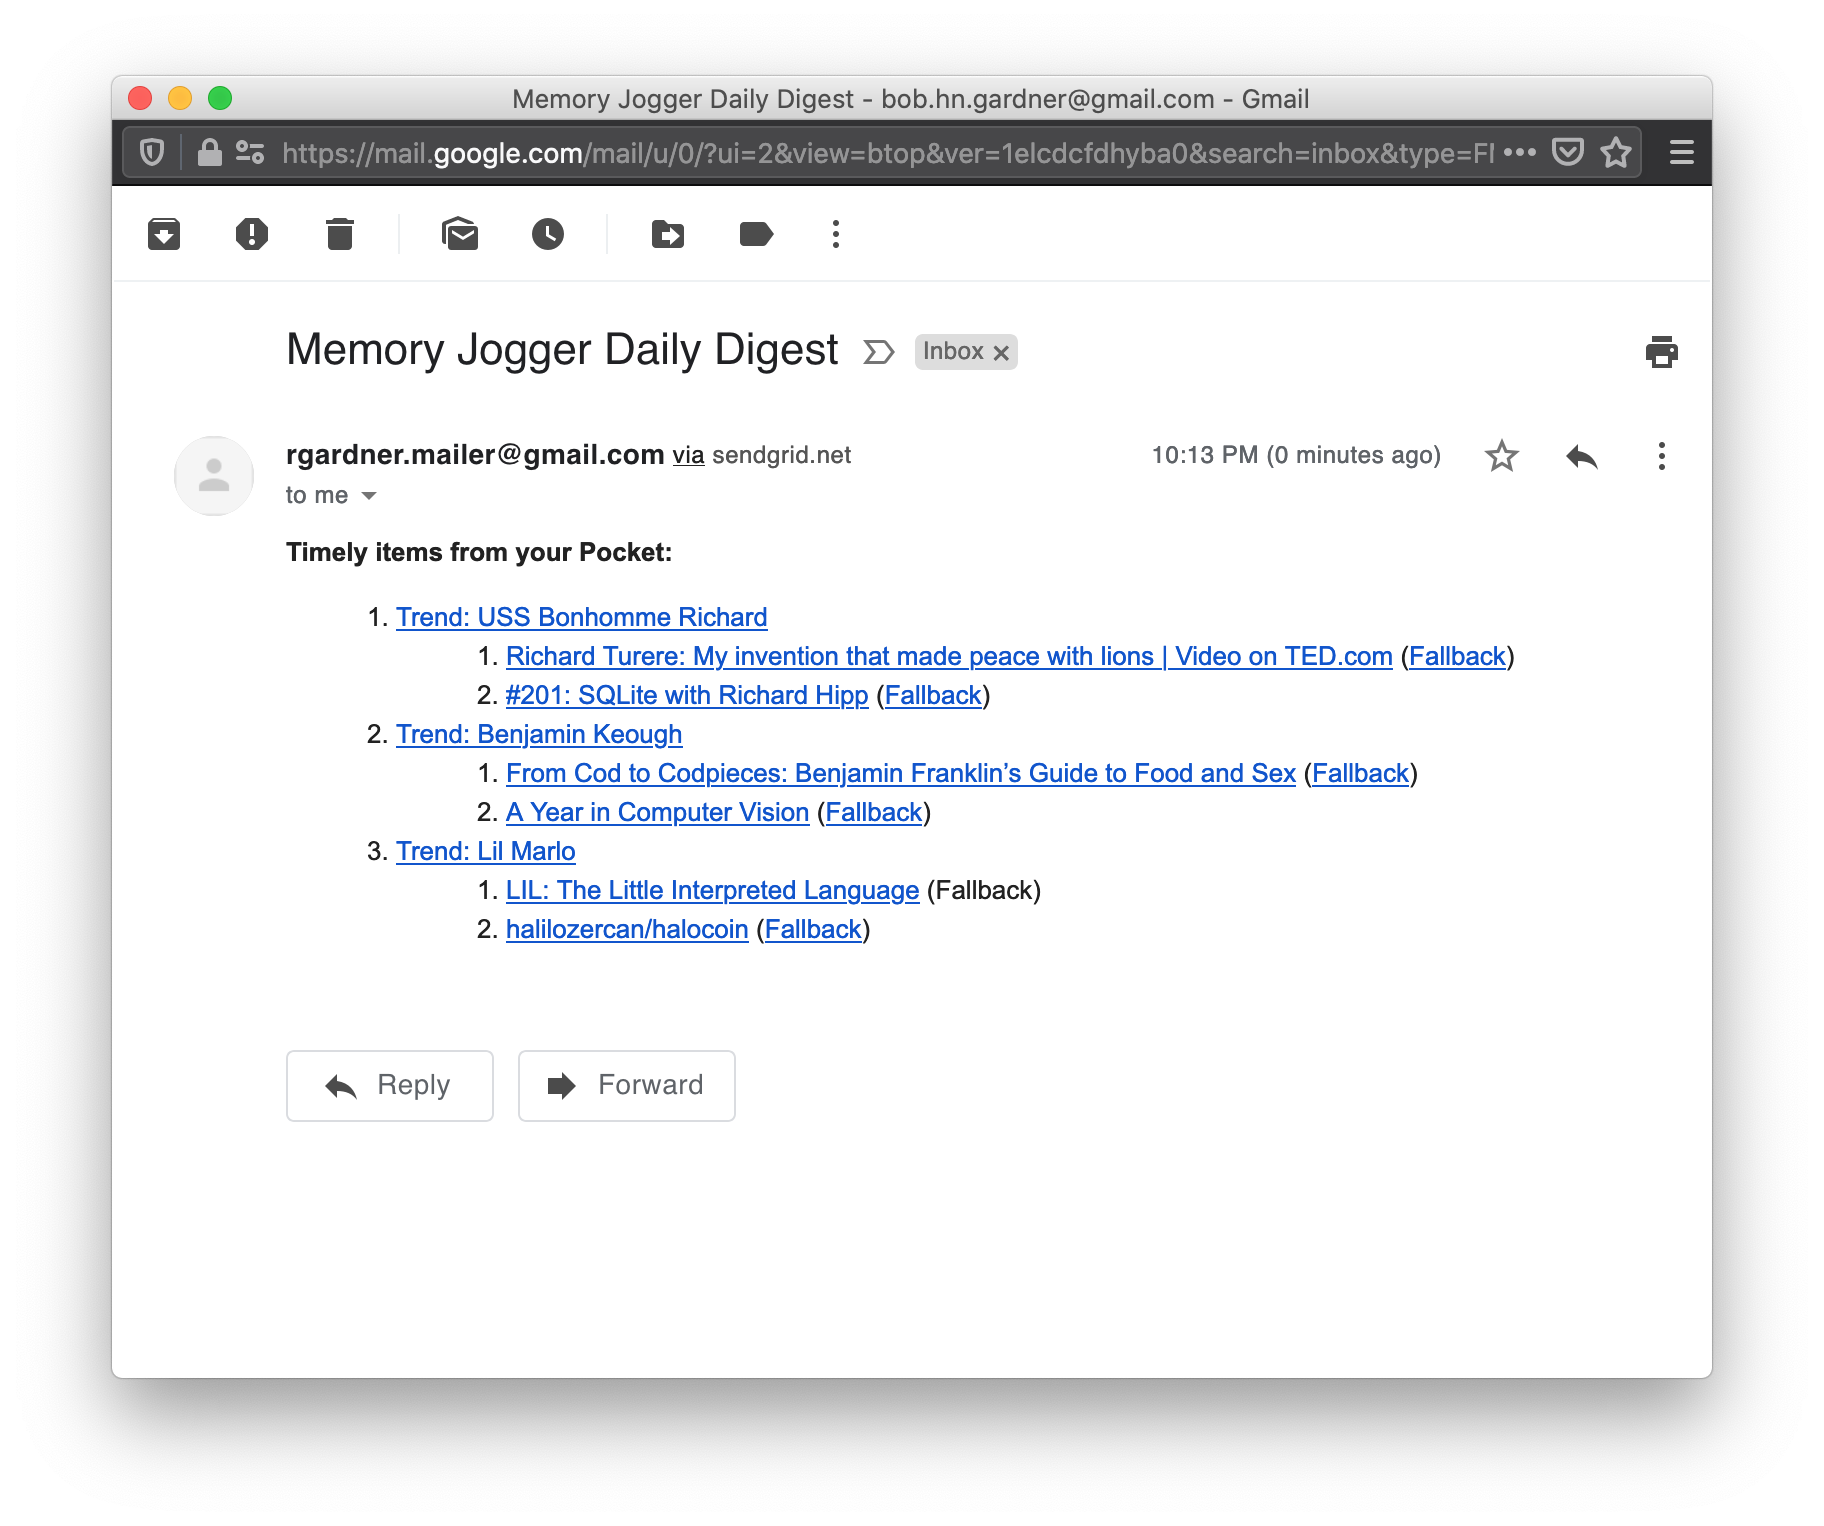 Memory Jogger Sample Email Digest